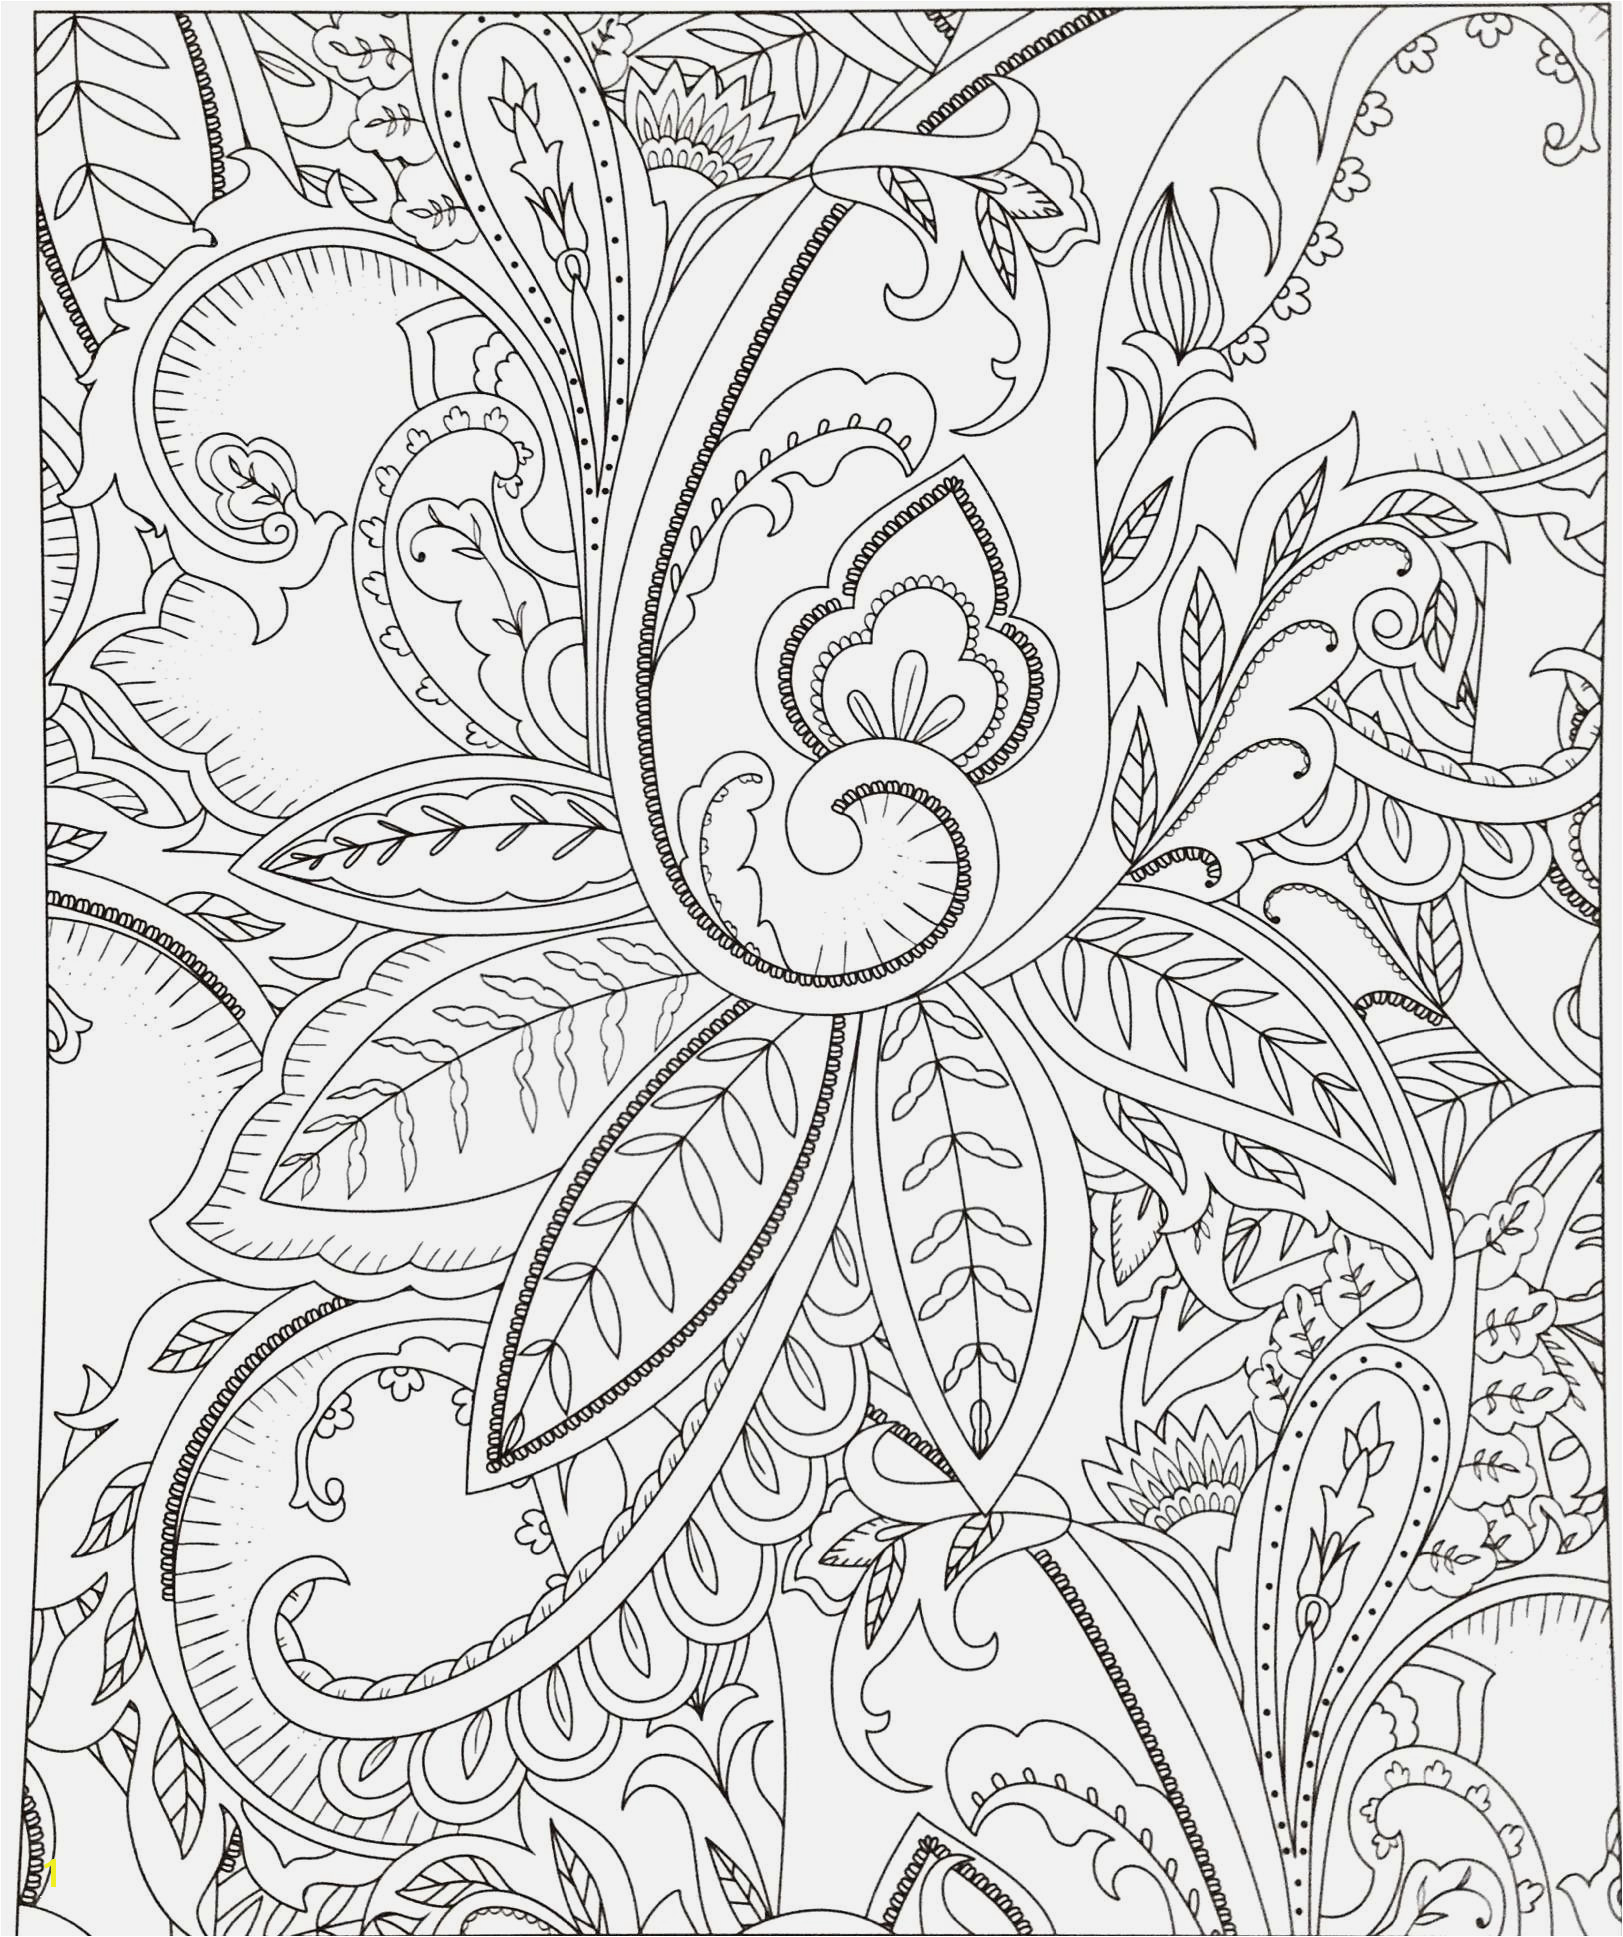 Barbie Princess Coloring Pages Printable Coloring Pages Princess and the Pauper Barbie Free Coloring Sheets Free